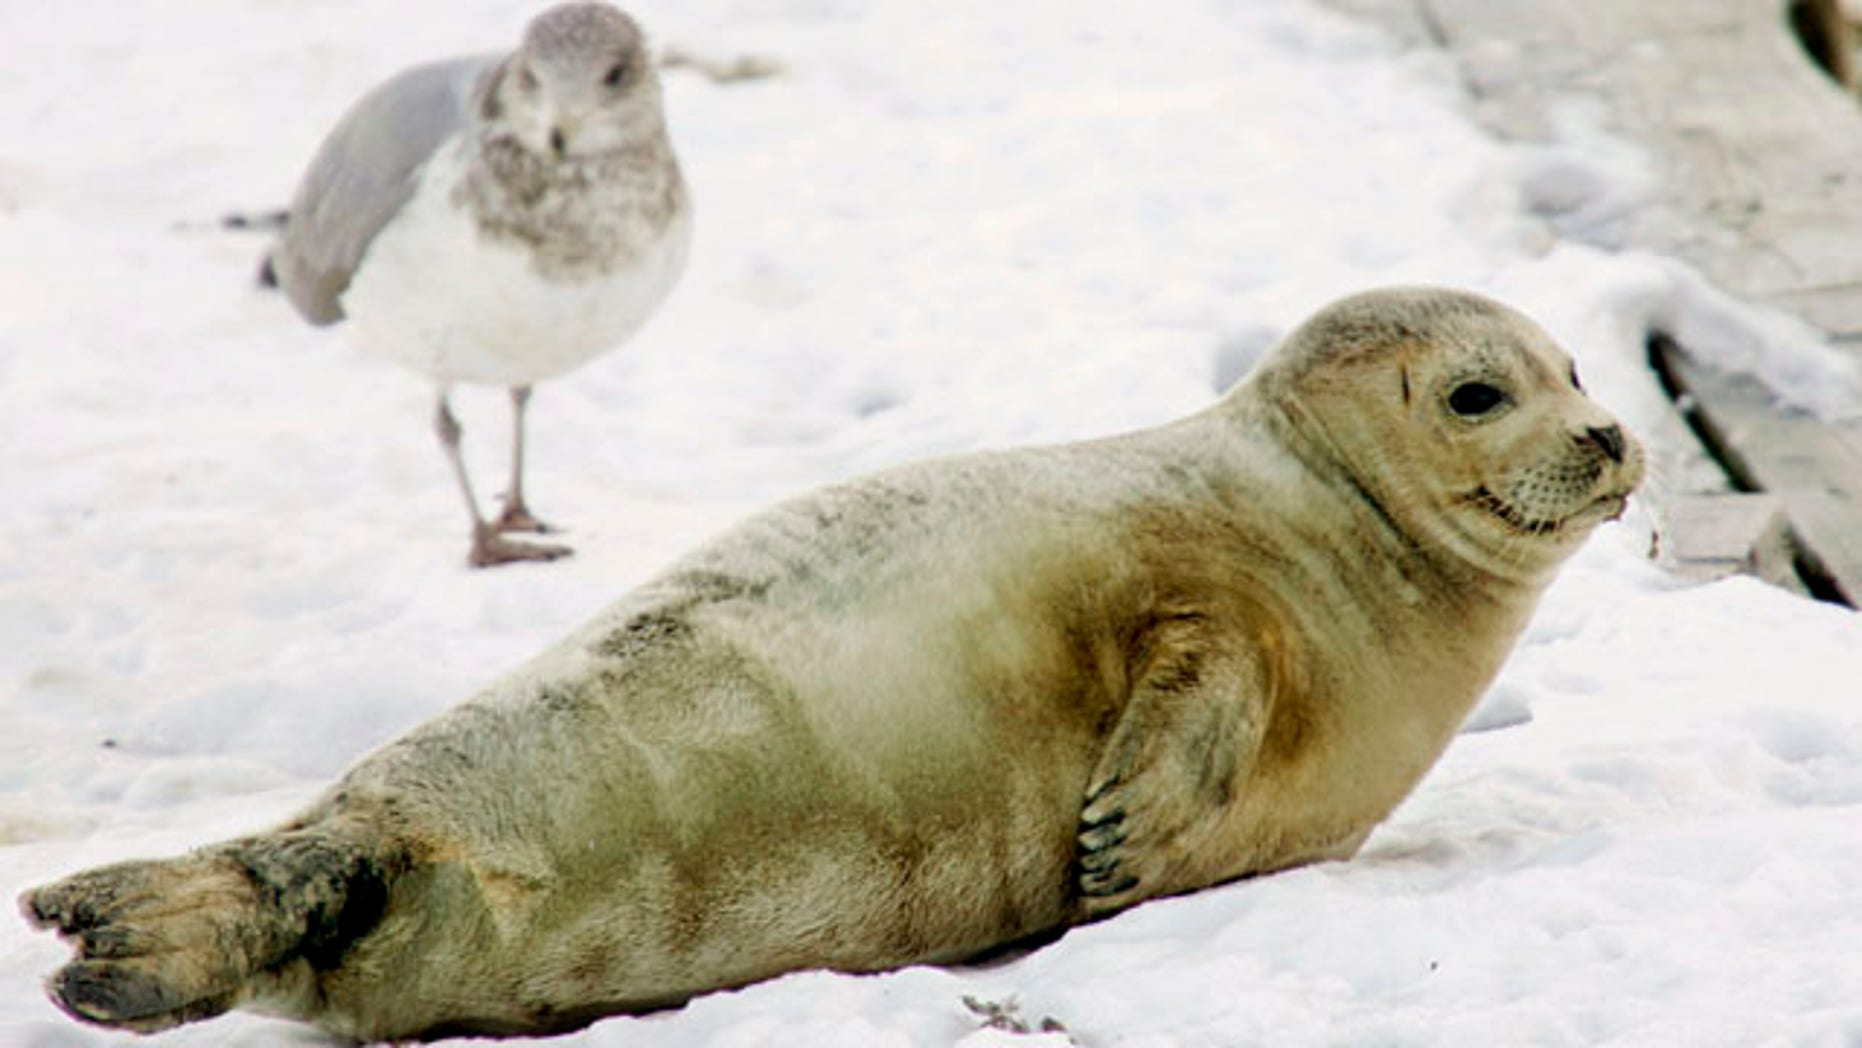 In this Jan. 27, 2009 file photo, a juvenile harp seal rests on an ice covered dock next to a seagull in Boston Harbor.